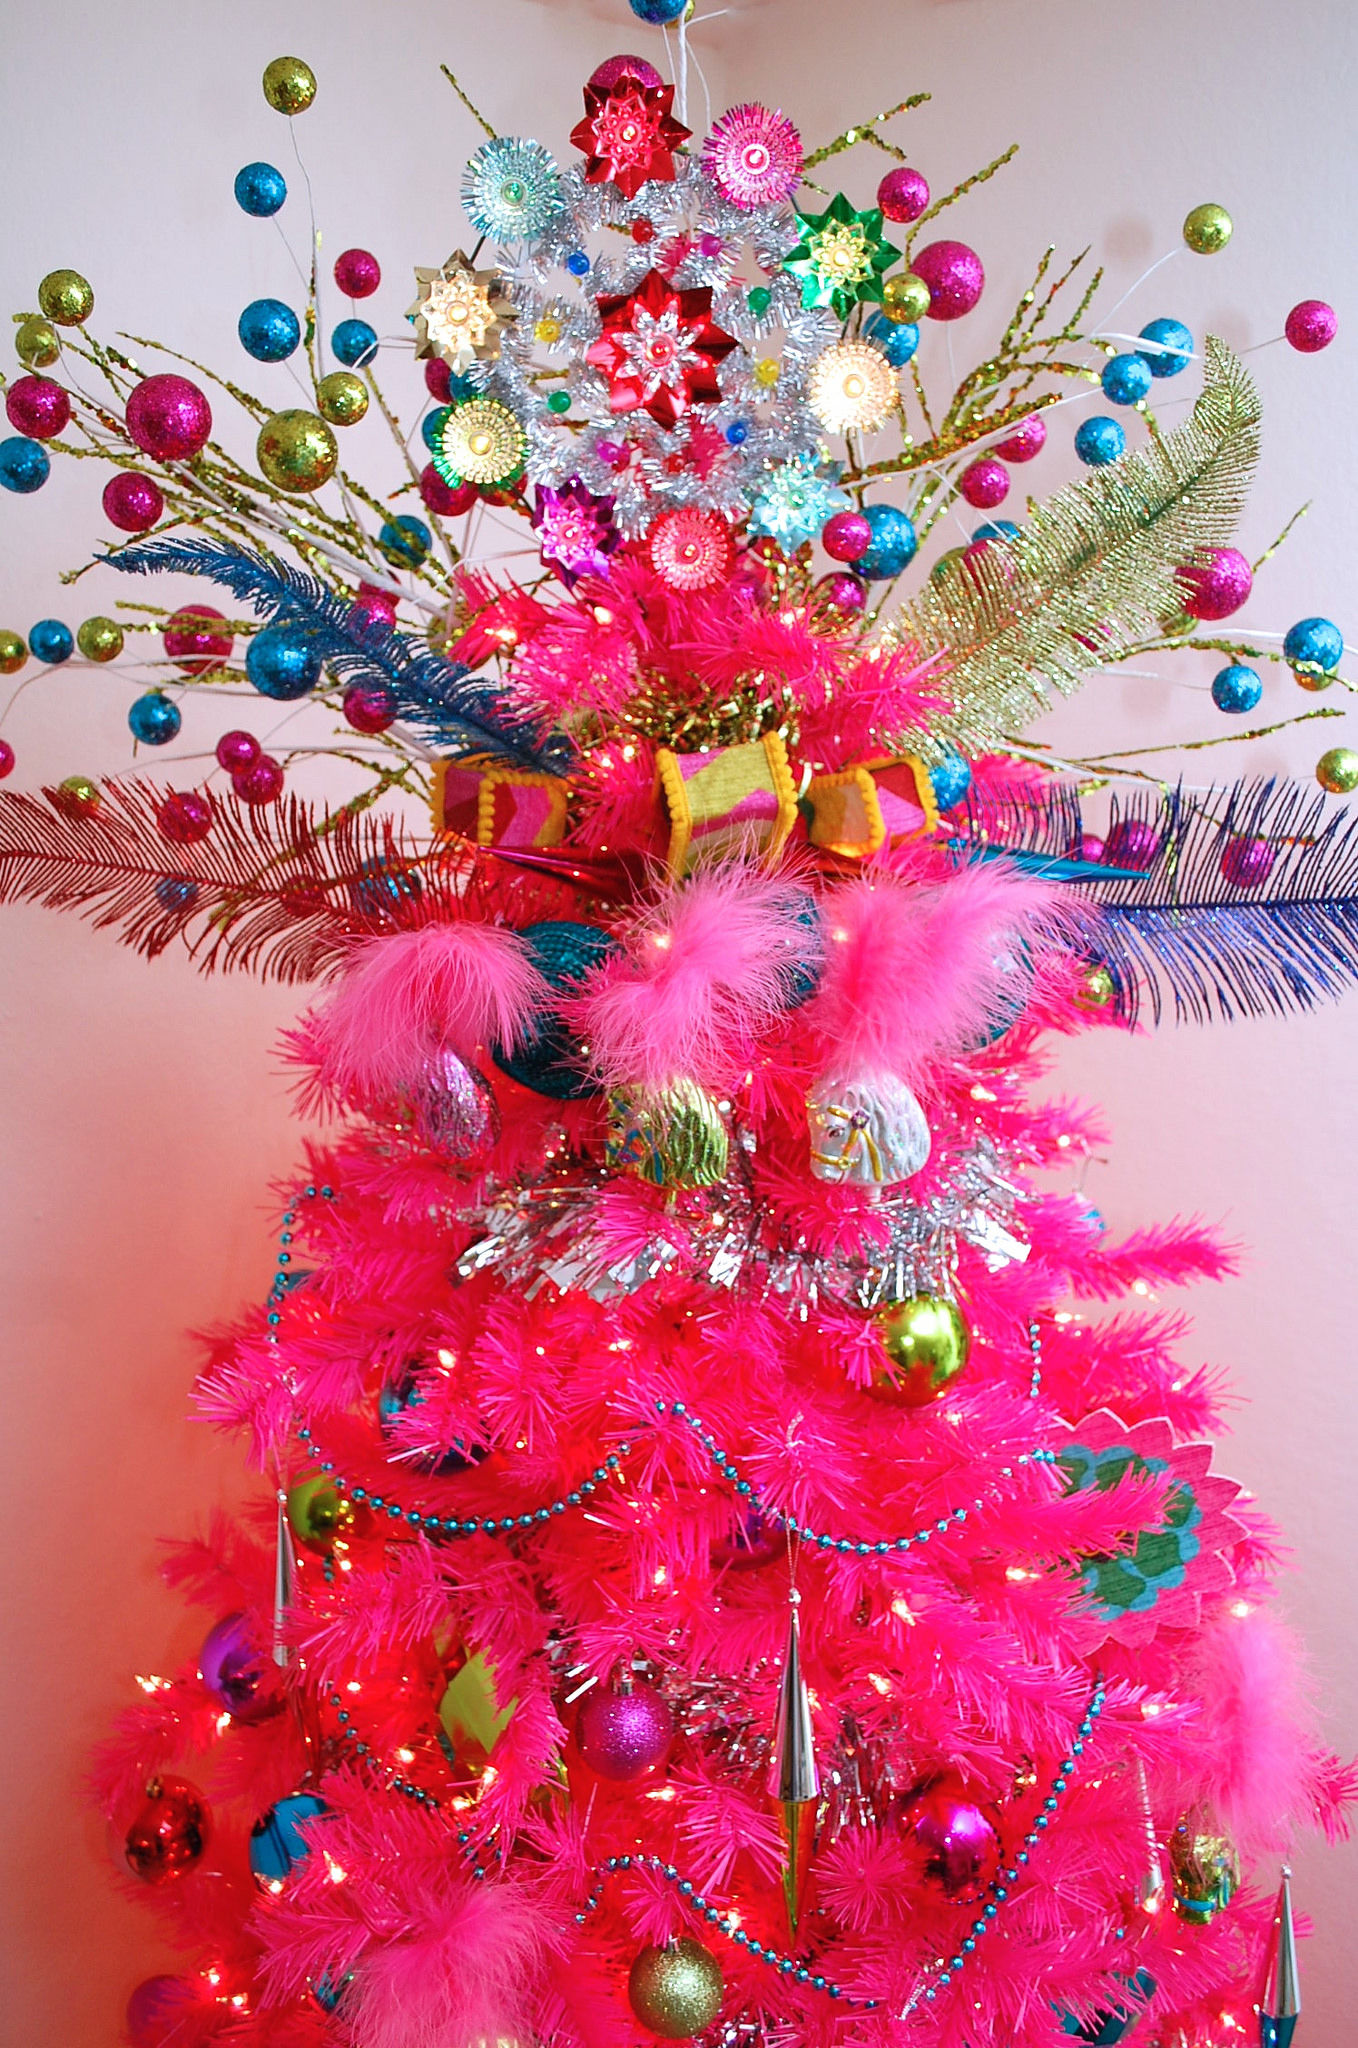 Cute Girly Wallpaper Quotes Hot Pink Christmas Tree With Colorful Tree Topper Pictures